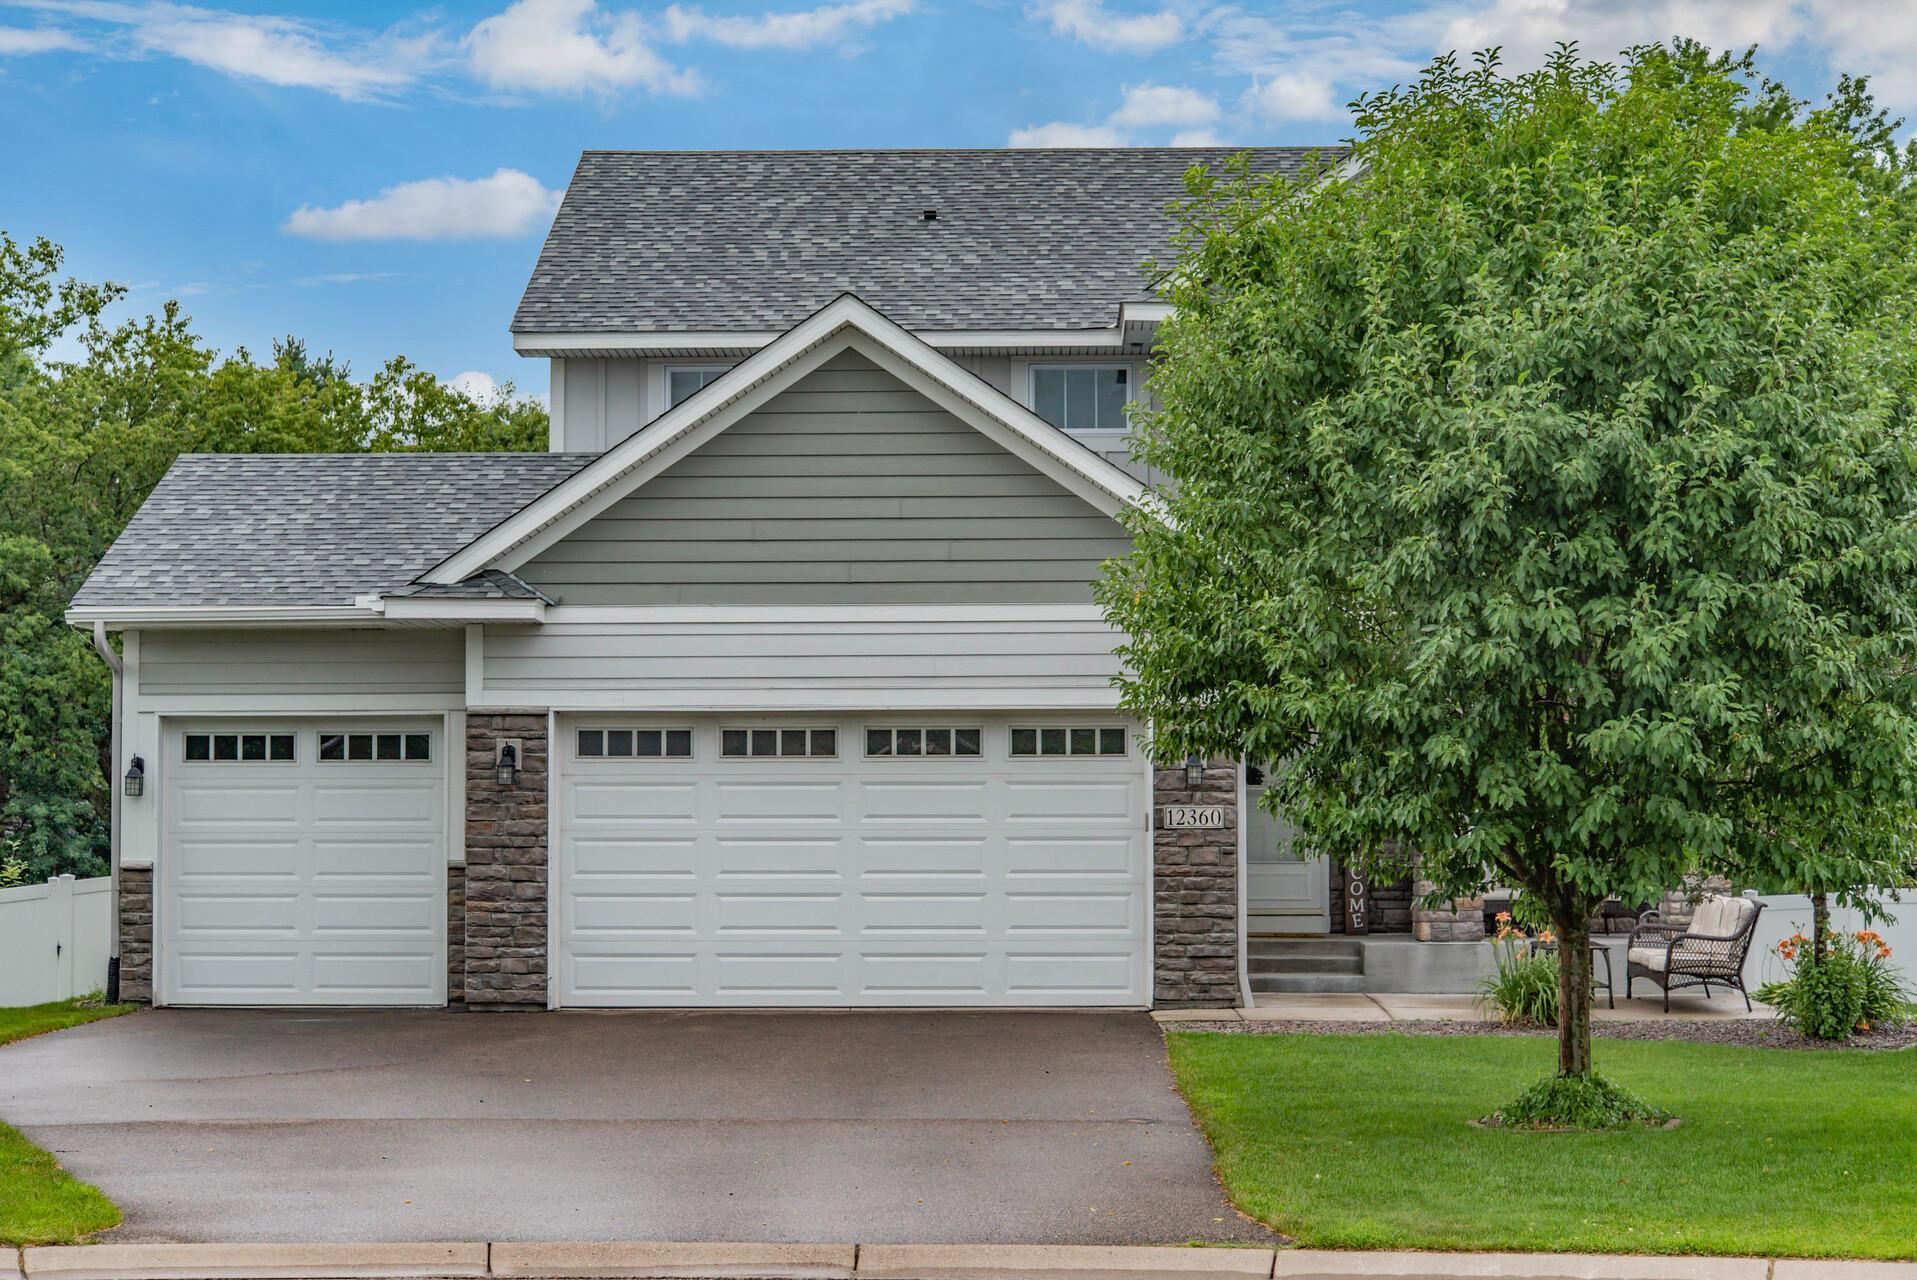 12360 Butternut NW Property Photo - Coon Rapids, MN real estate listing